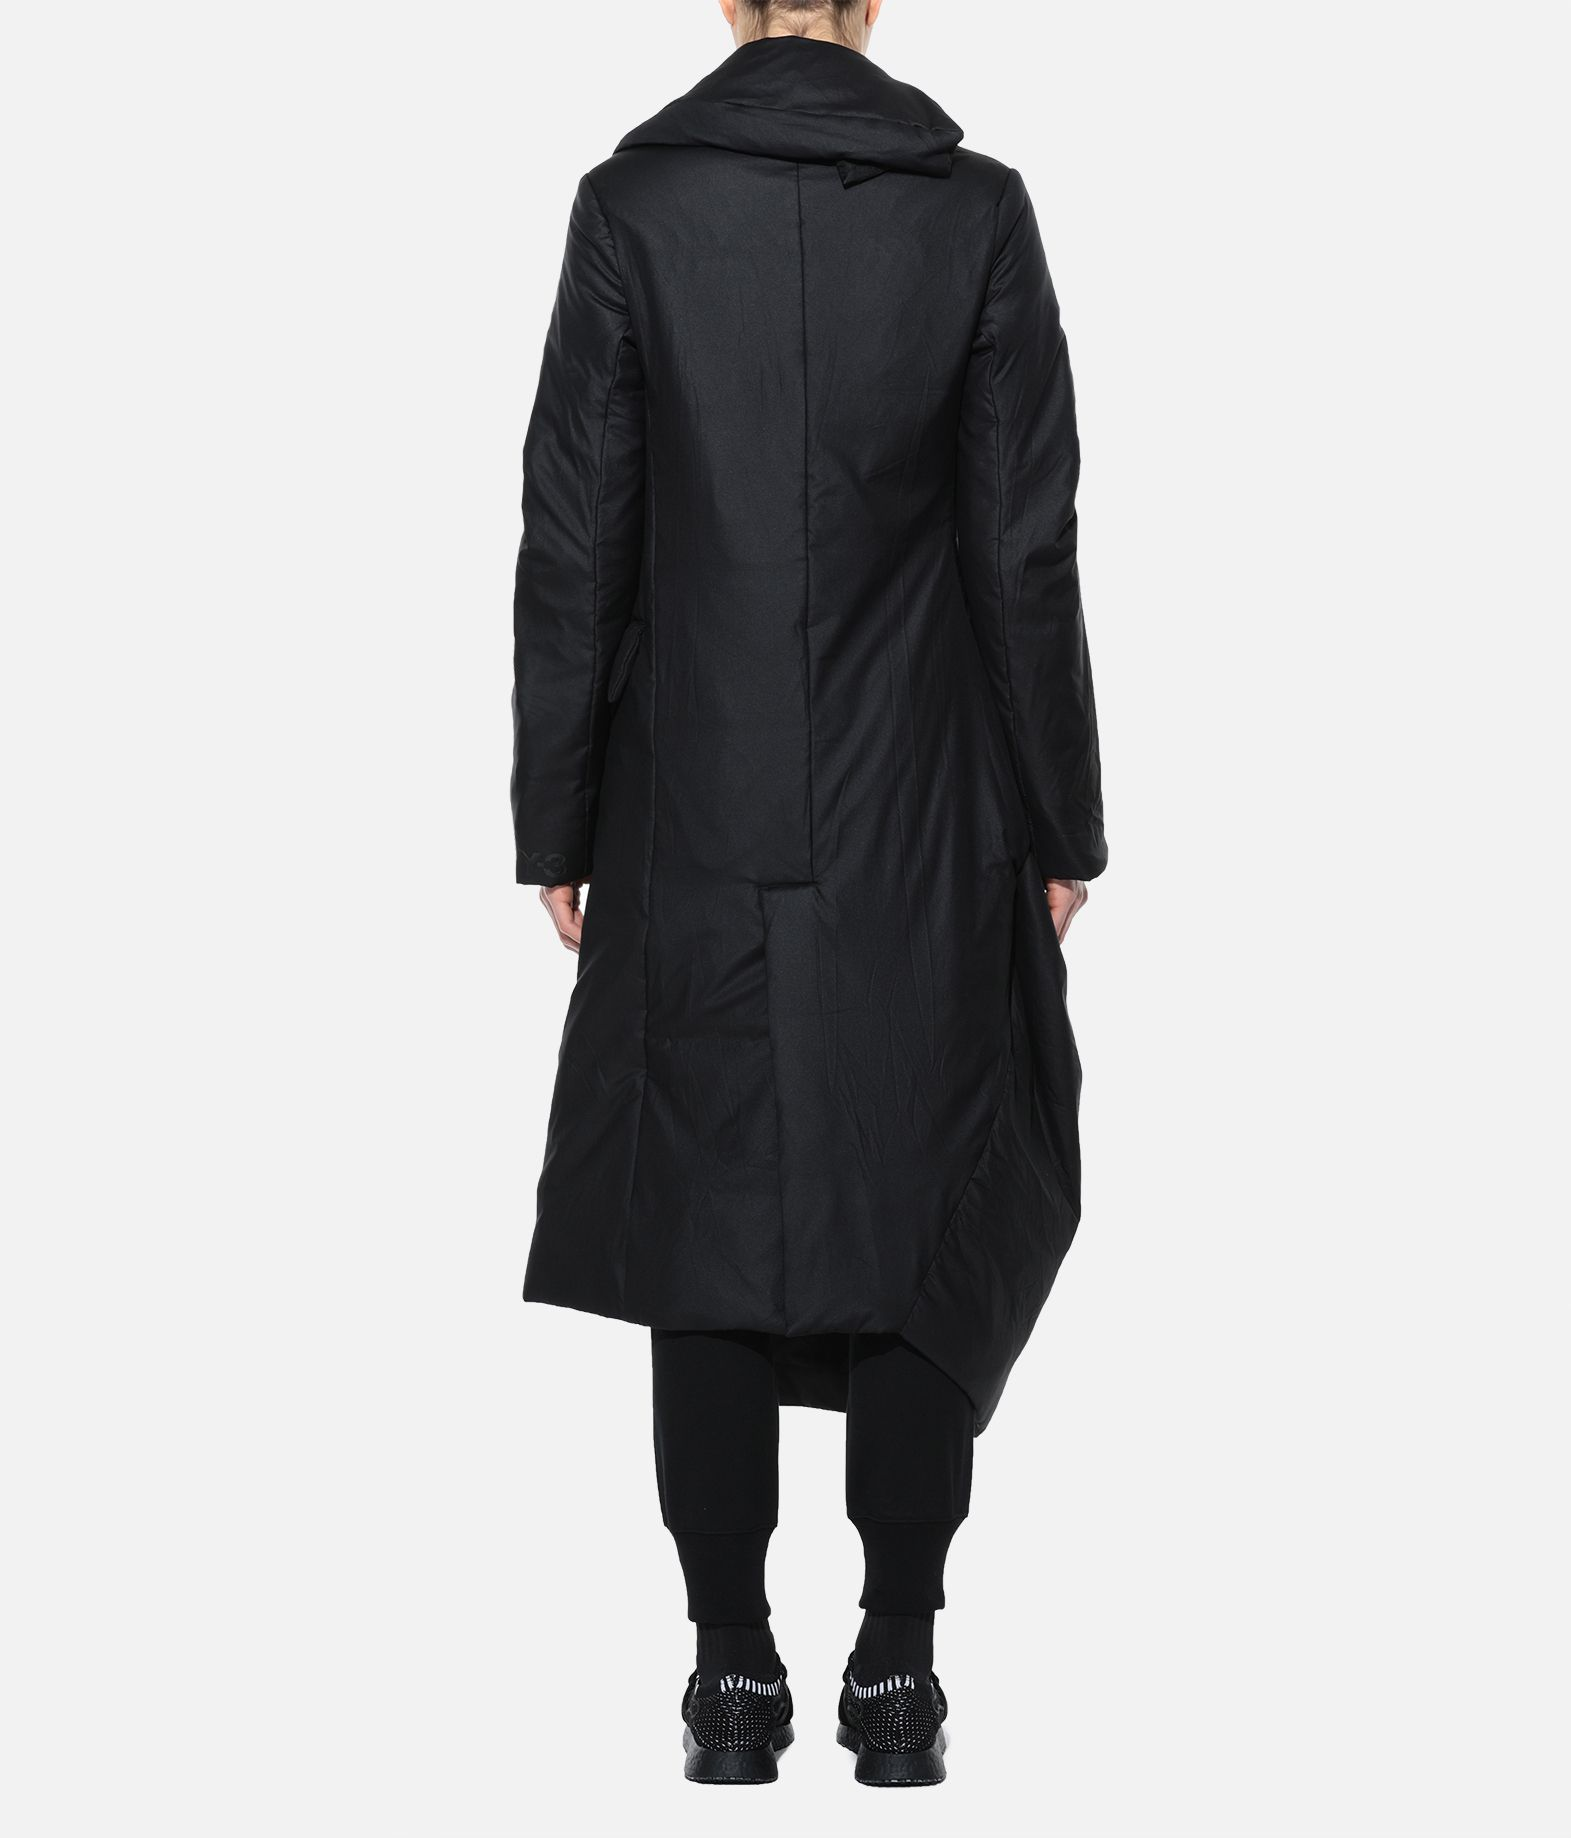 Y-3 Y-3 Adizero Padded Coat Jacket Woman d